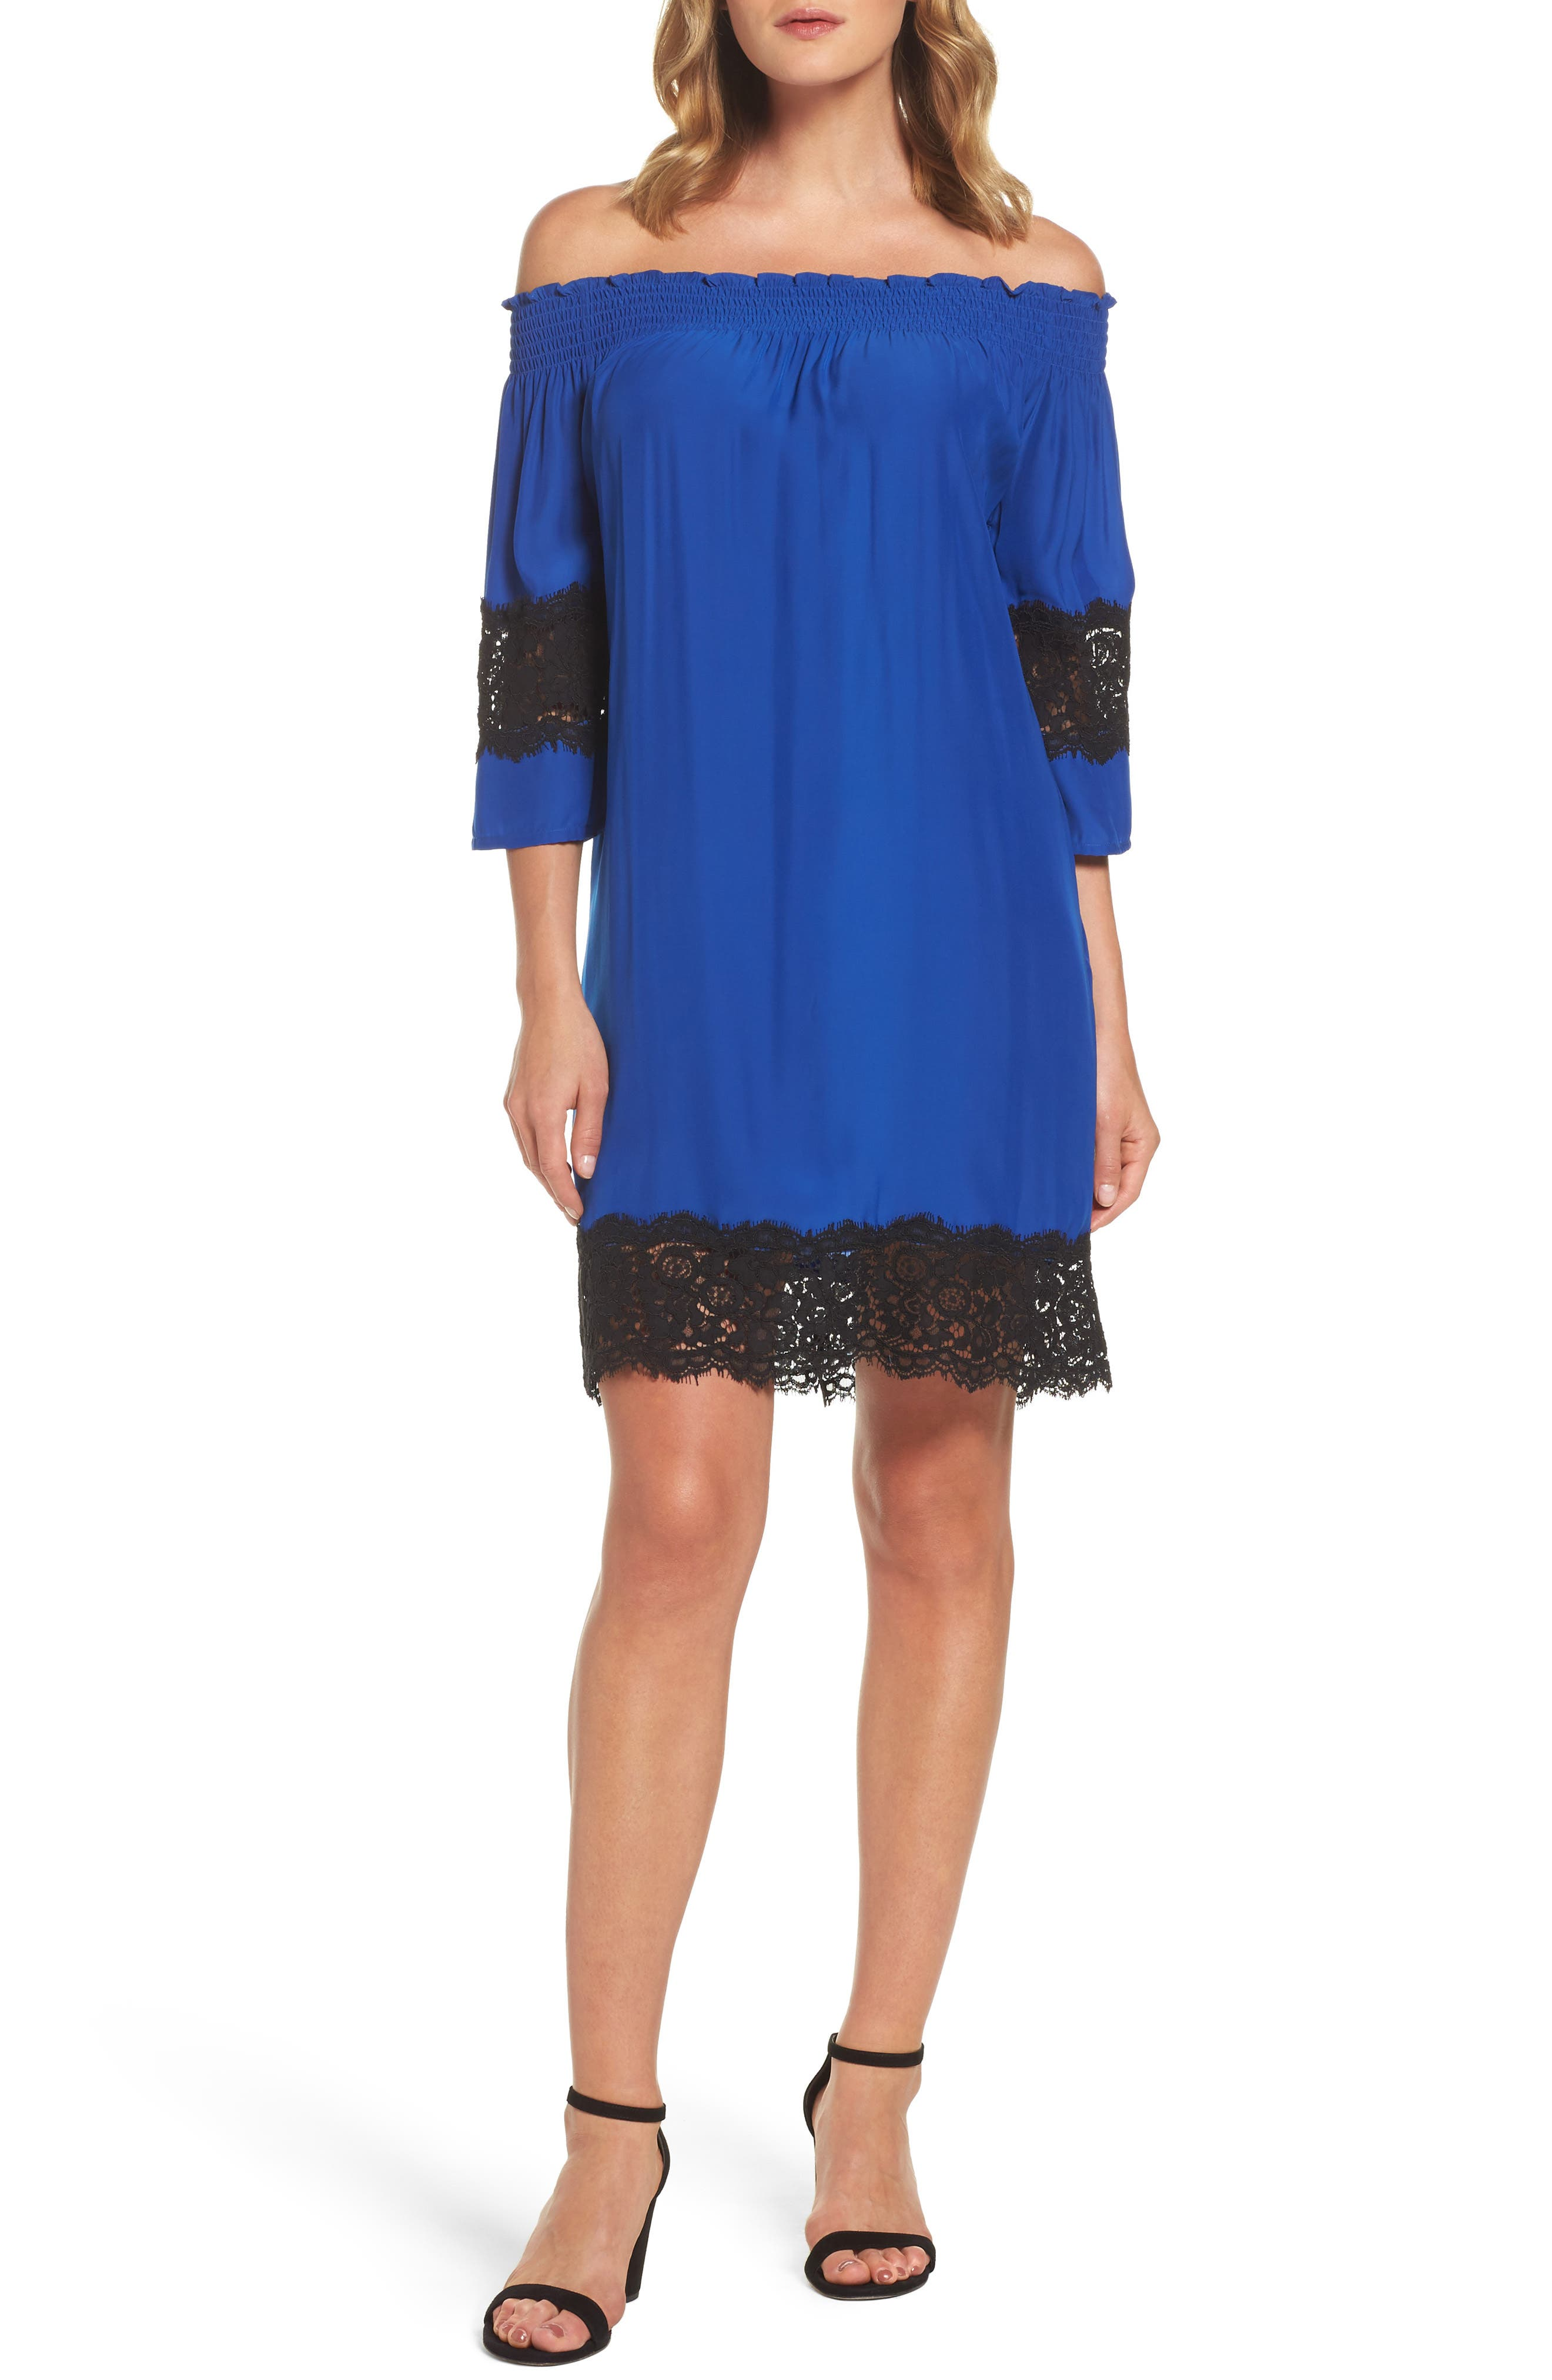 Felicity & Coco Off the Shoulder Shift Dress (Nordstrom Exclusive)